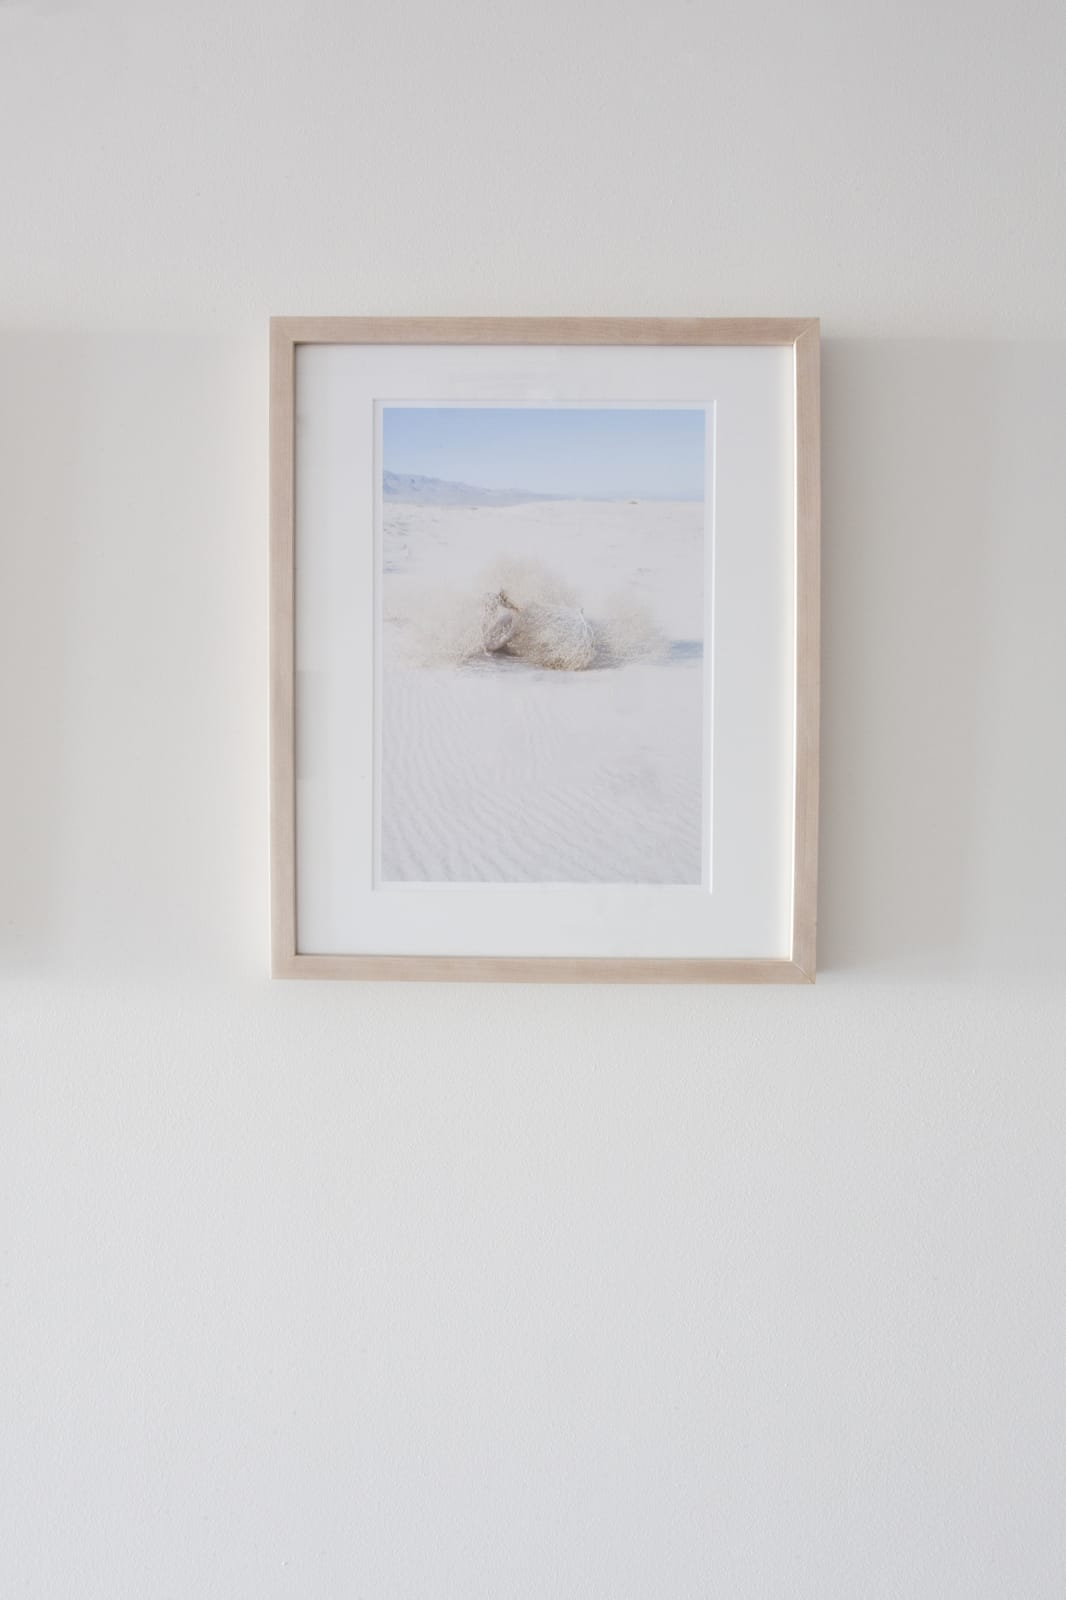 Grace Clark Kelso Dunes II, 2017 digital pigment print print size 15 x 10 inches, 20 x 16 framed, edition 1/10 $ 650.00